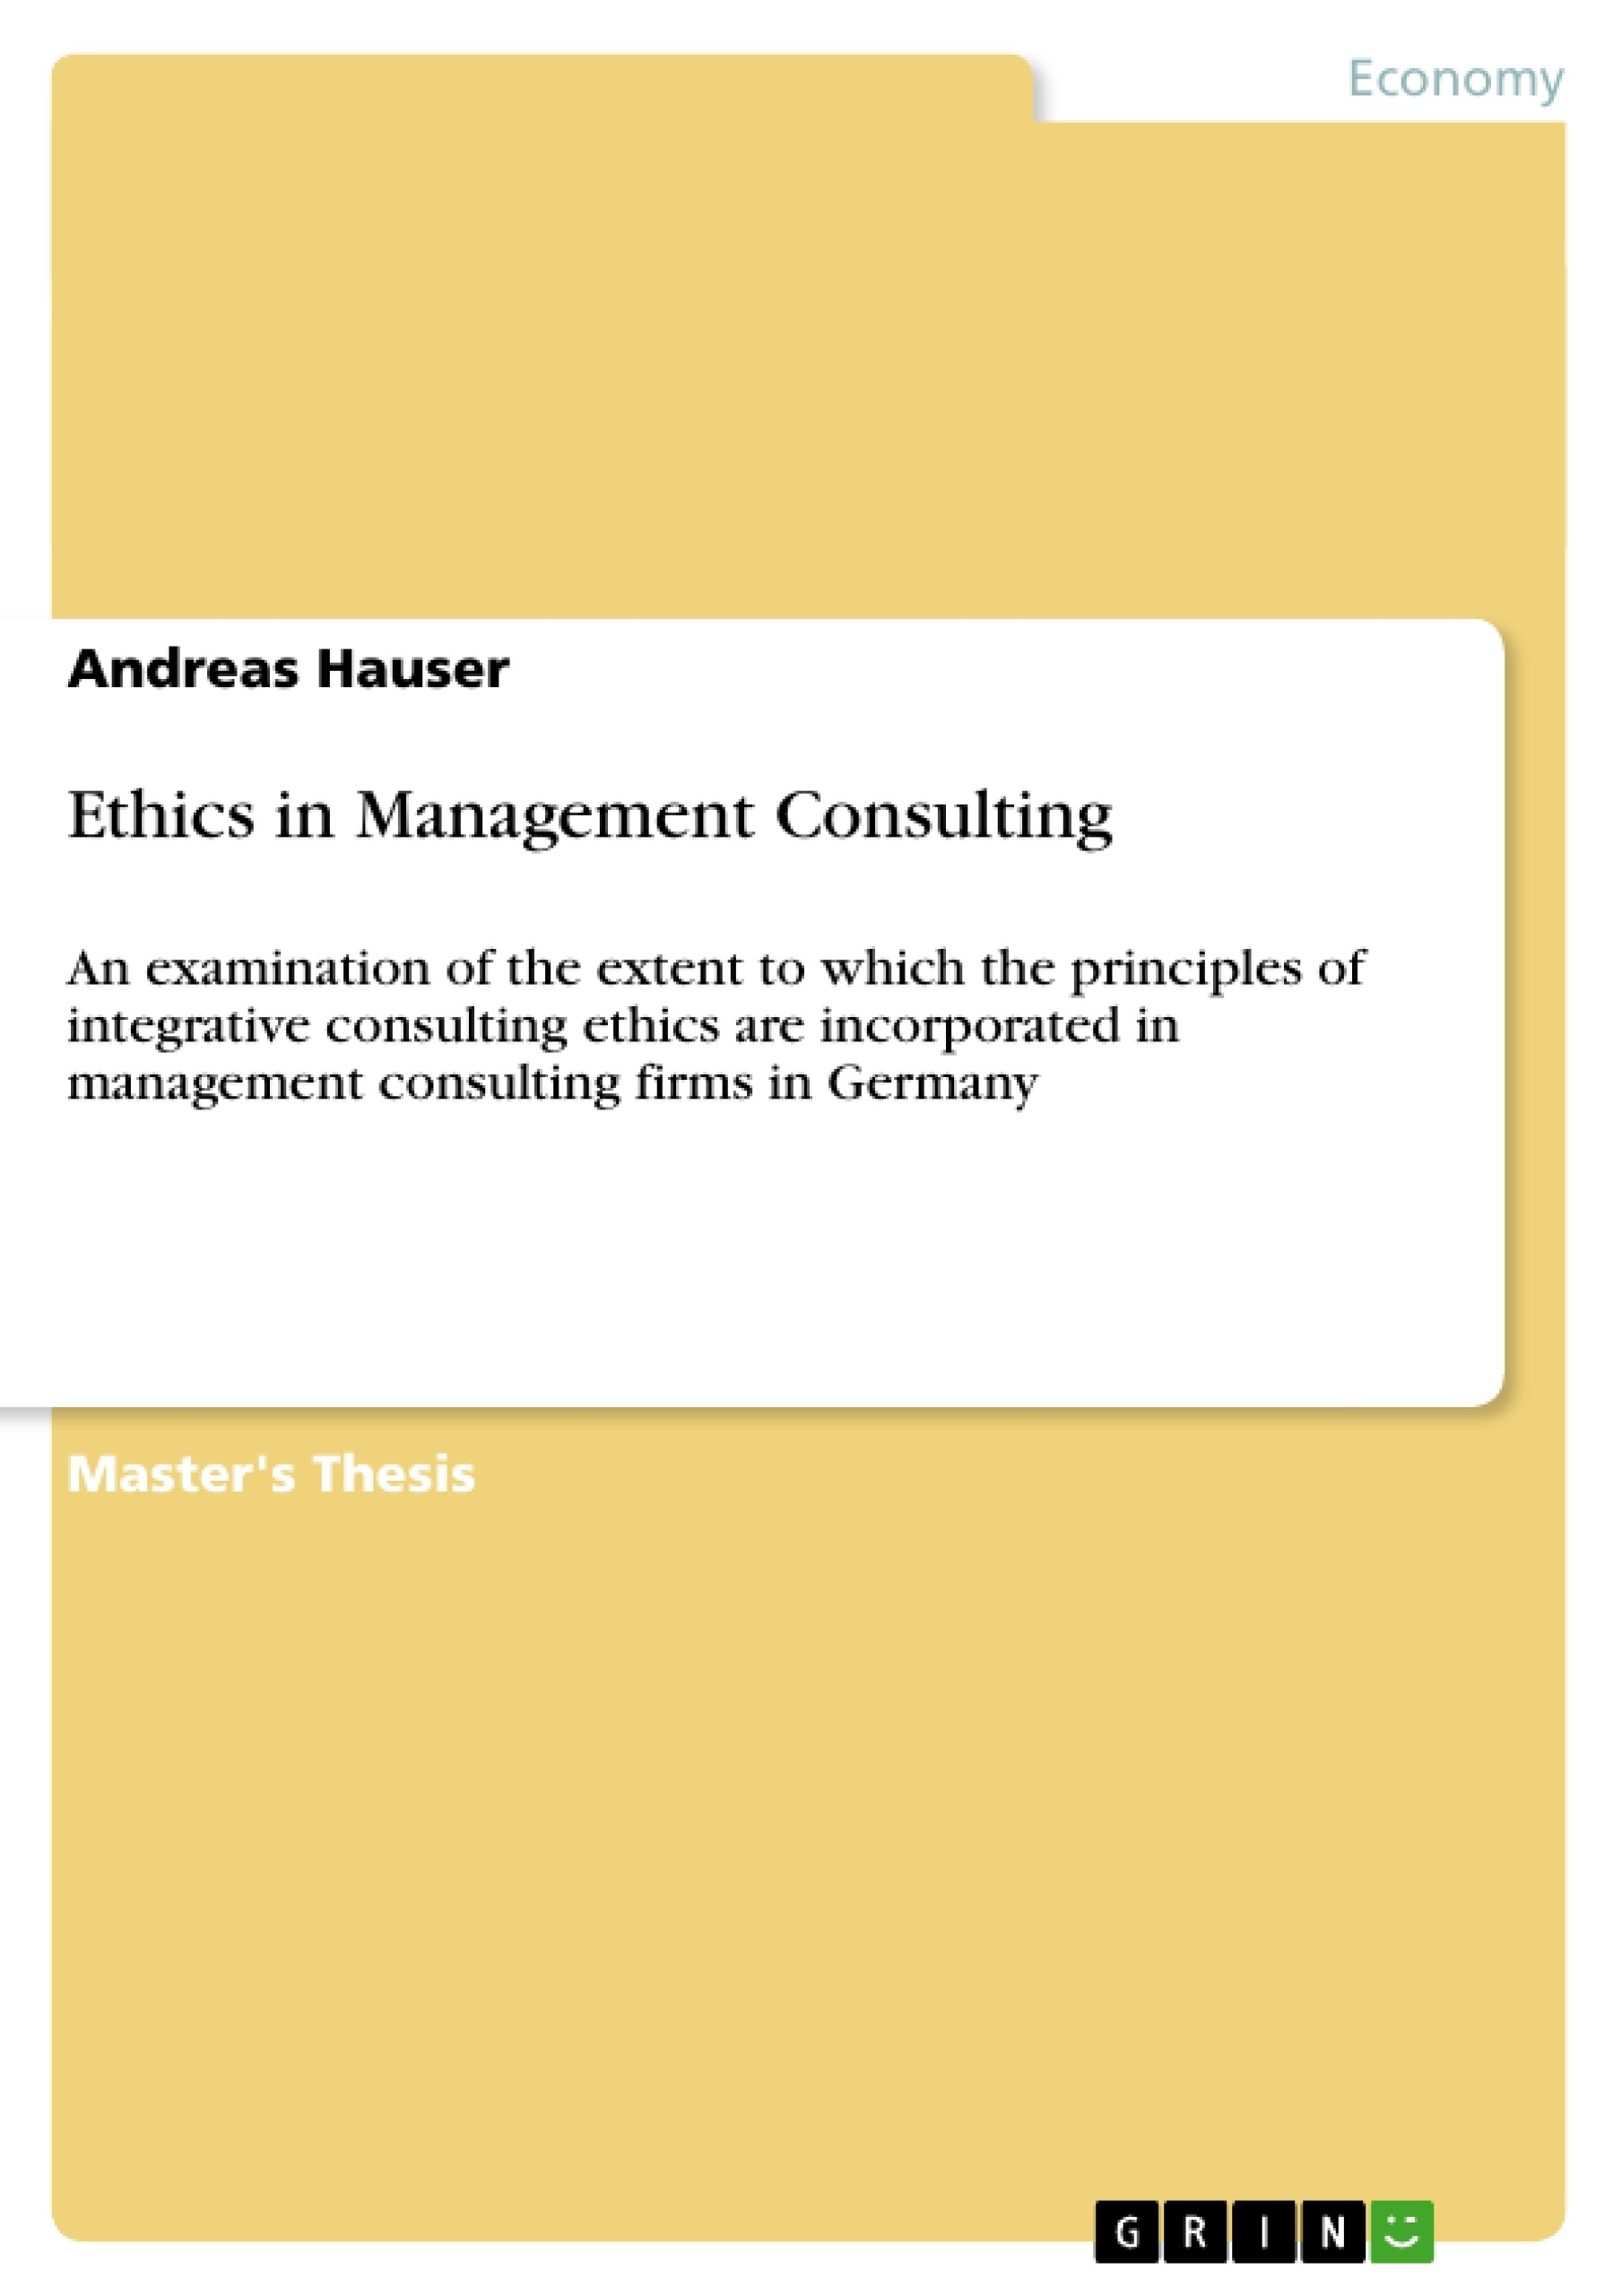 ethics in management consulting publish your master s thesis ethics in management consulting publish your master s thesis bachelor s thesis essay or term paper